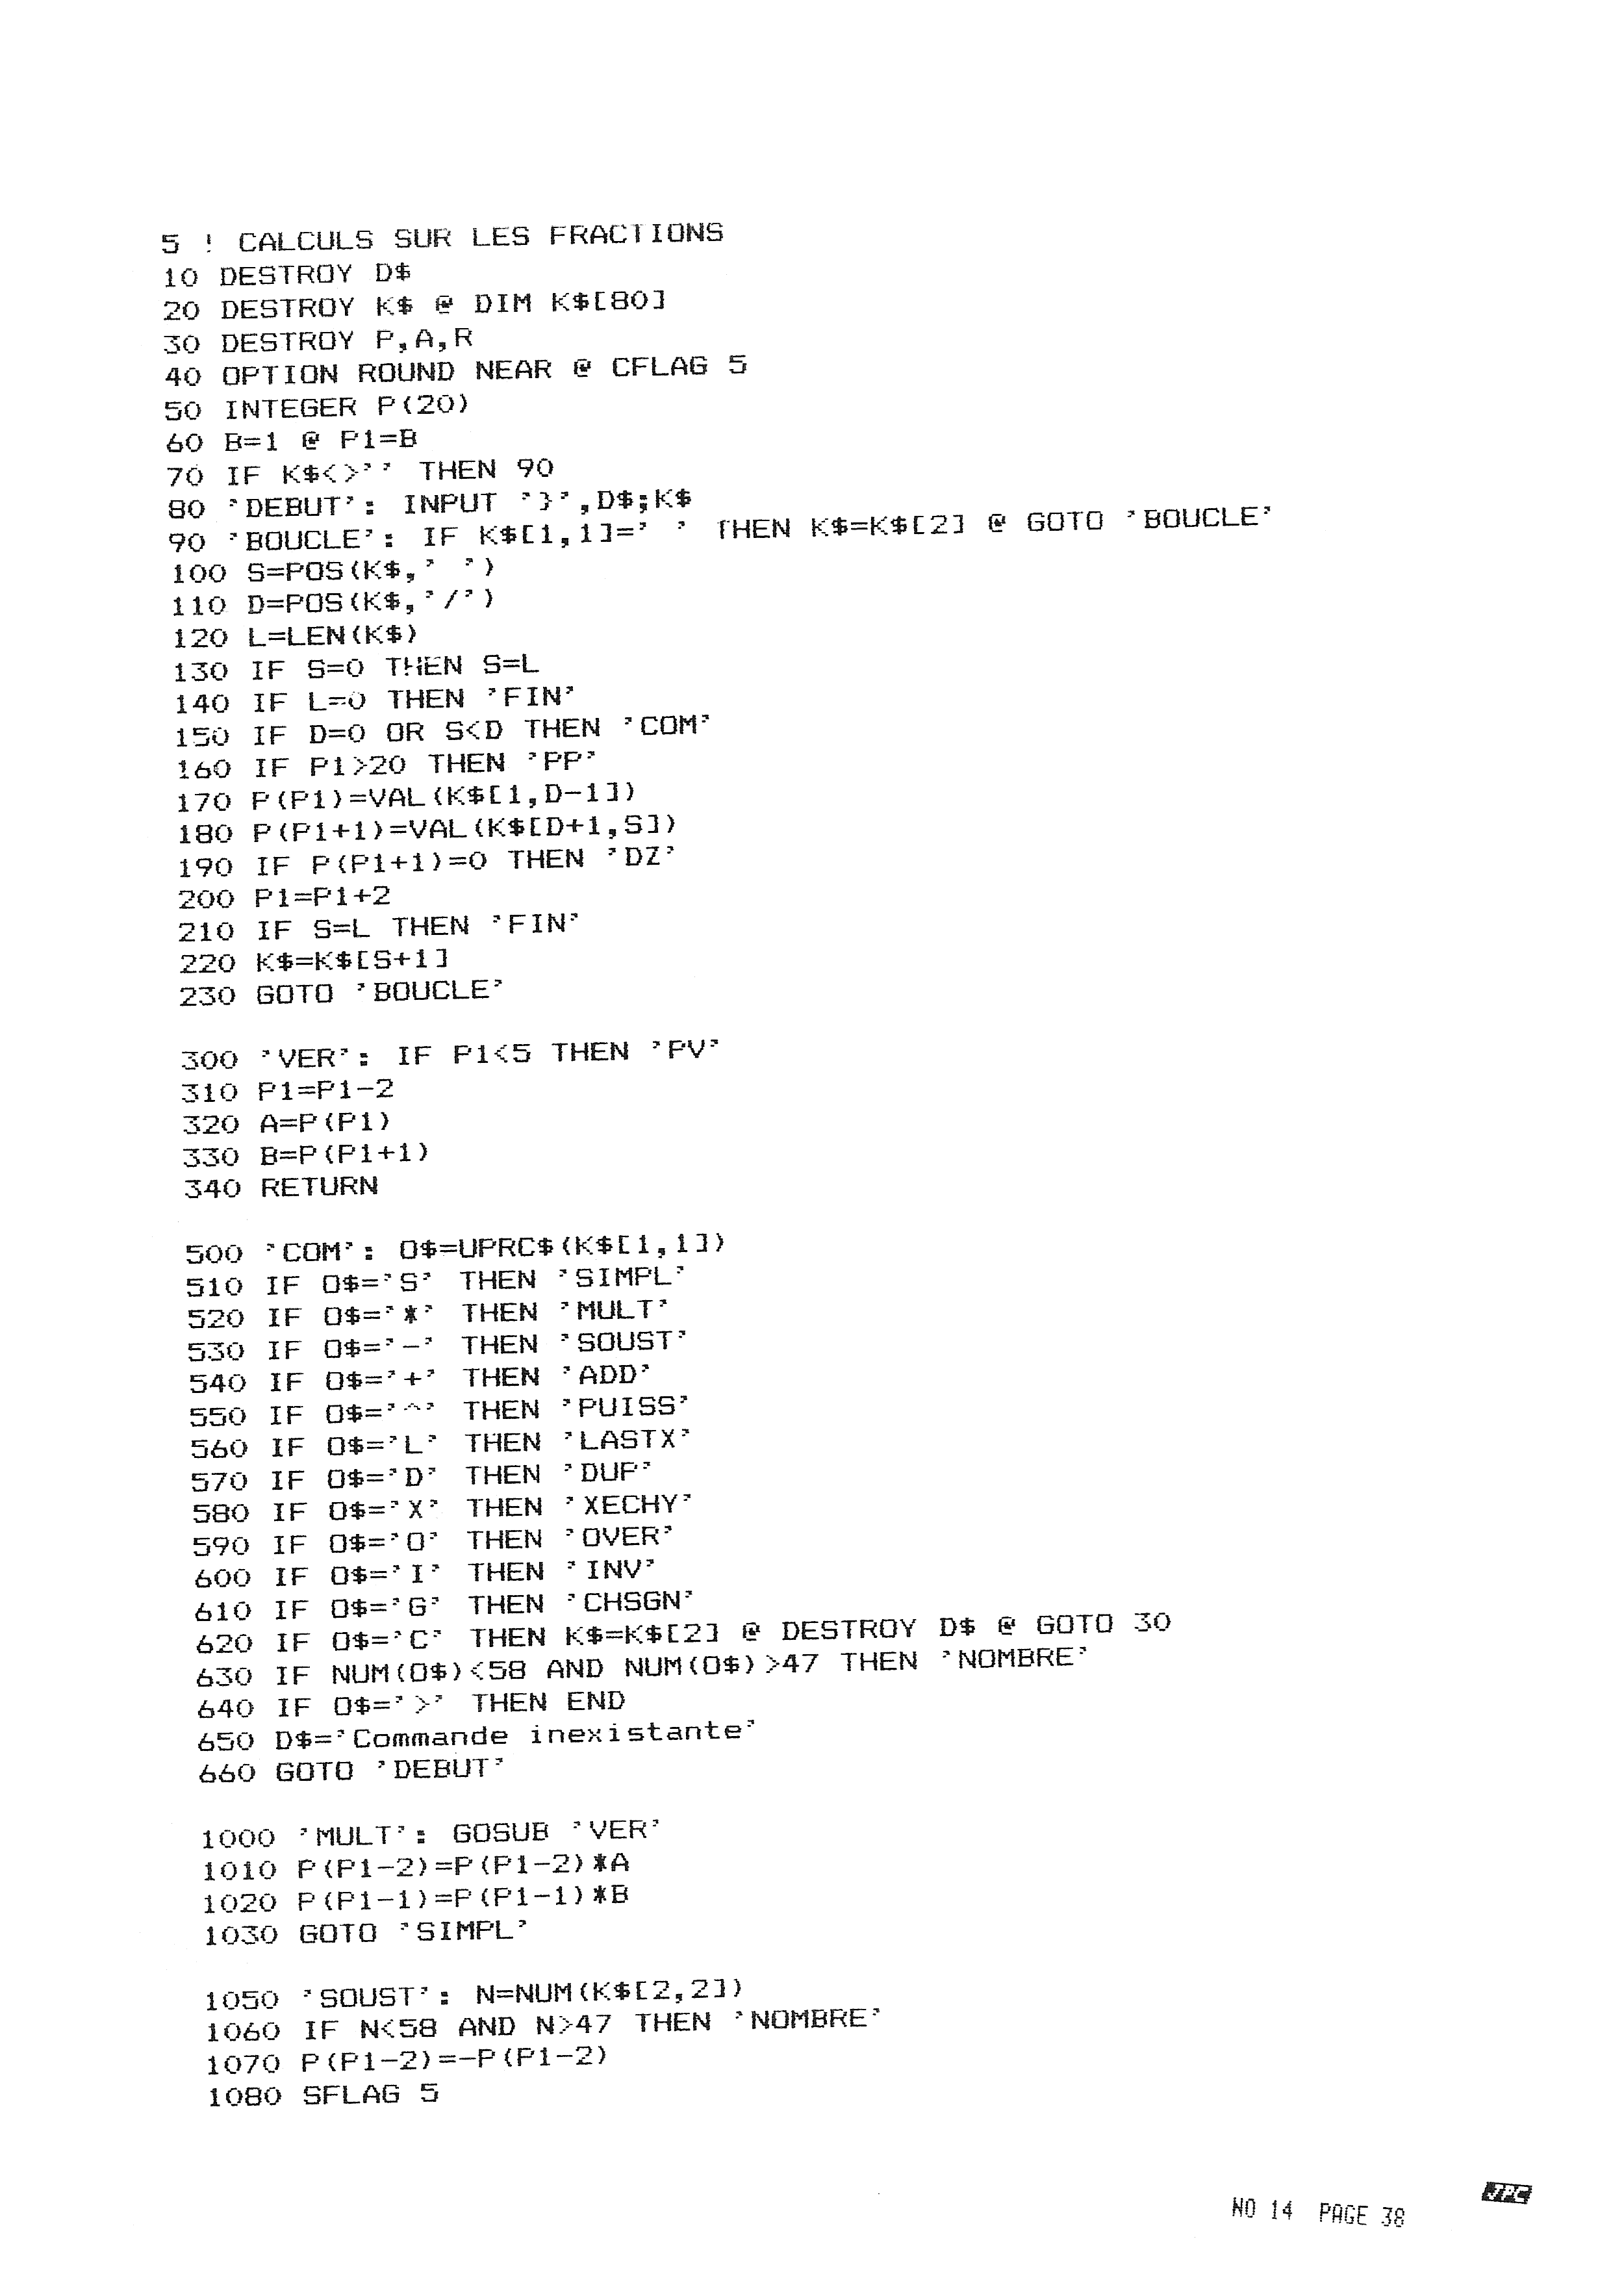 Jp-14-page-46-1000